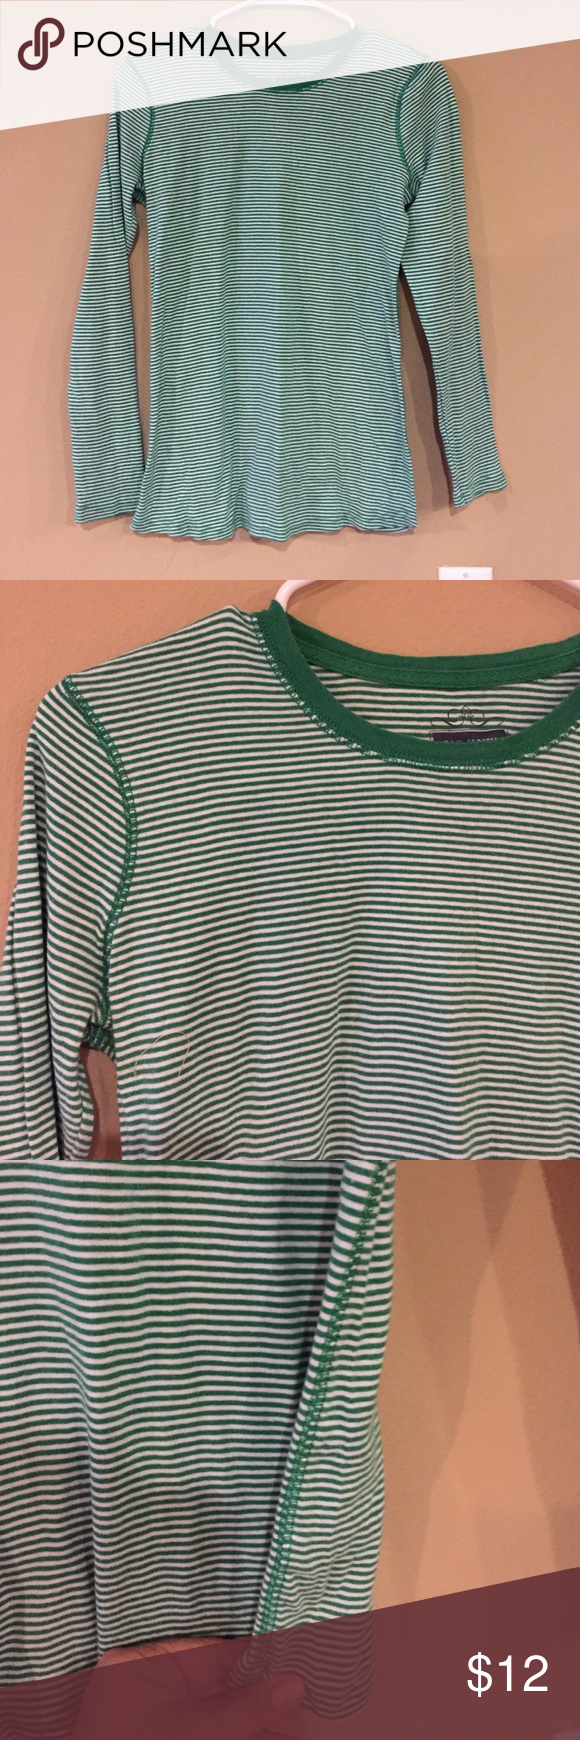 "Maternity striped long sleeve tee Green and white long sleeve 15.5w x 24.5"" front length super soft and stretchy marked size small fits like a medium Old Navy Tops Tees - Long Sleeve"